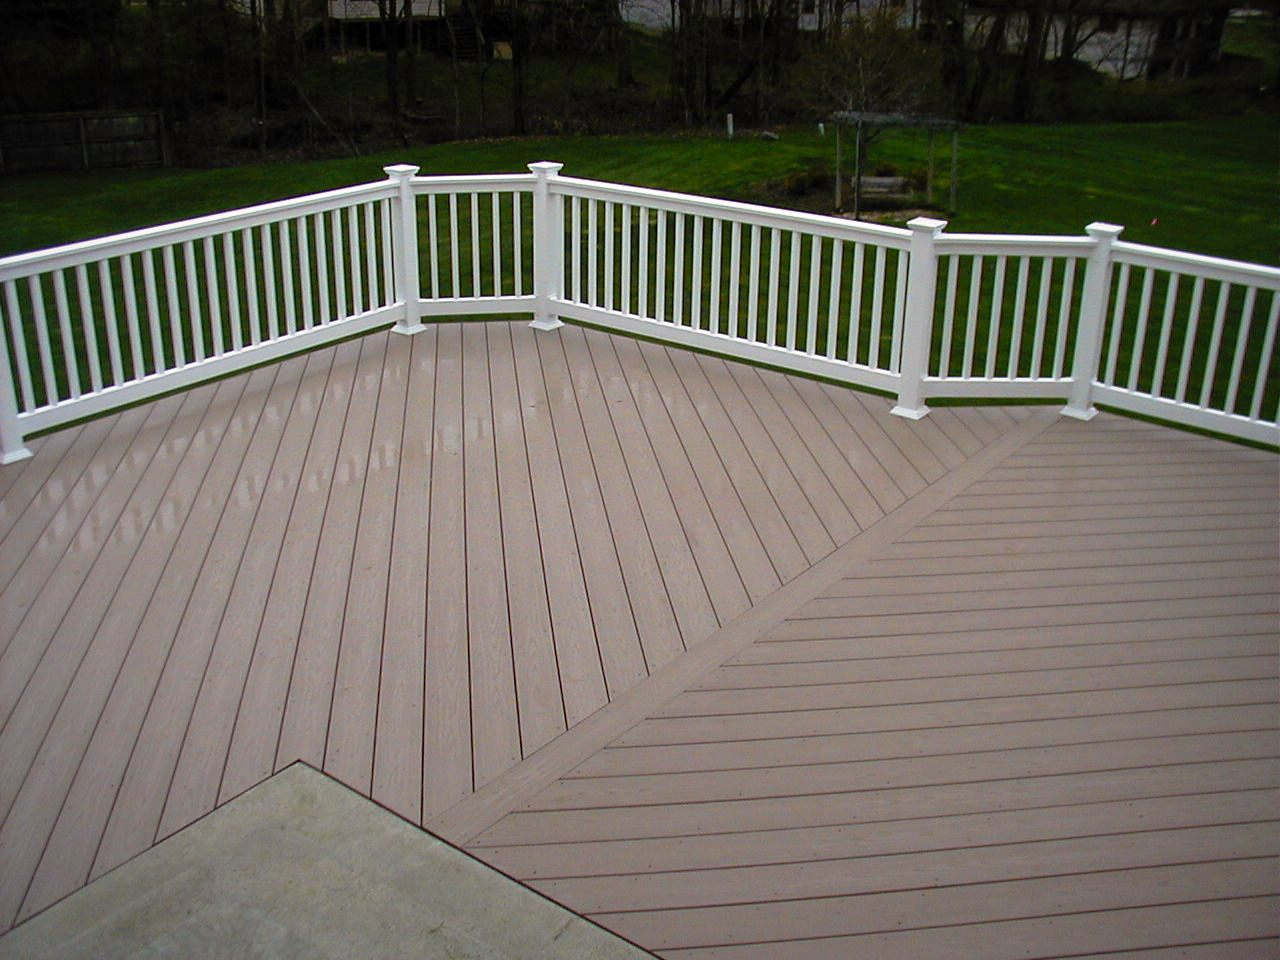 Wood Decks Pvc Vs Wood Decks